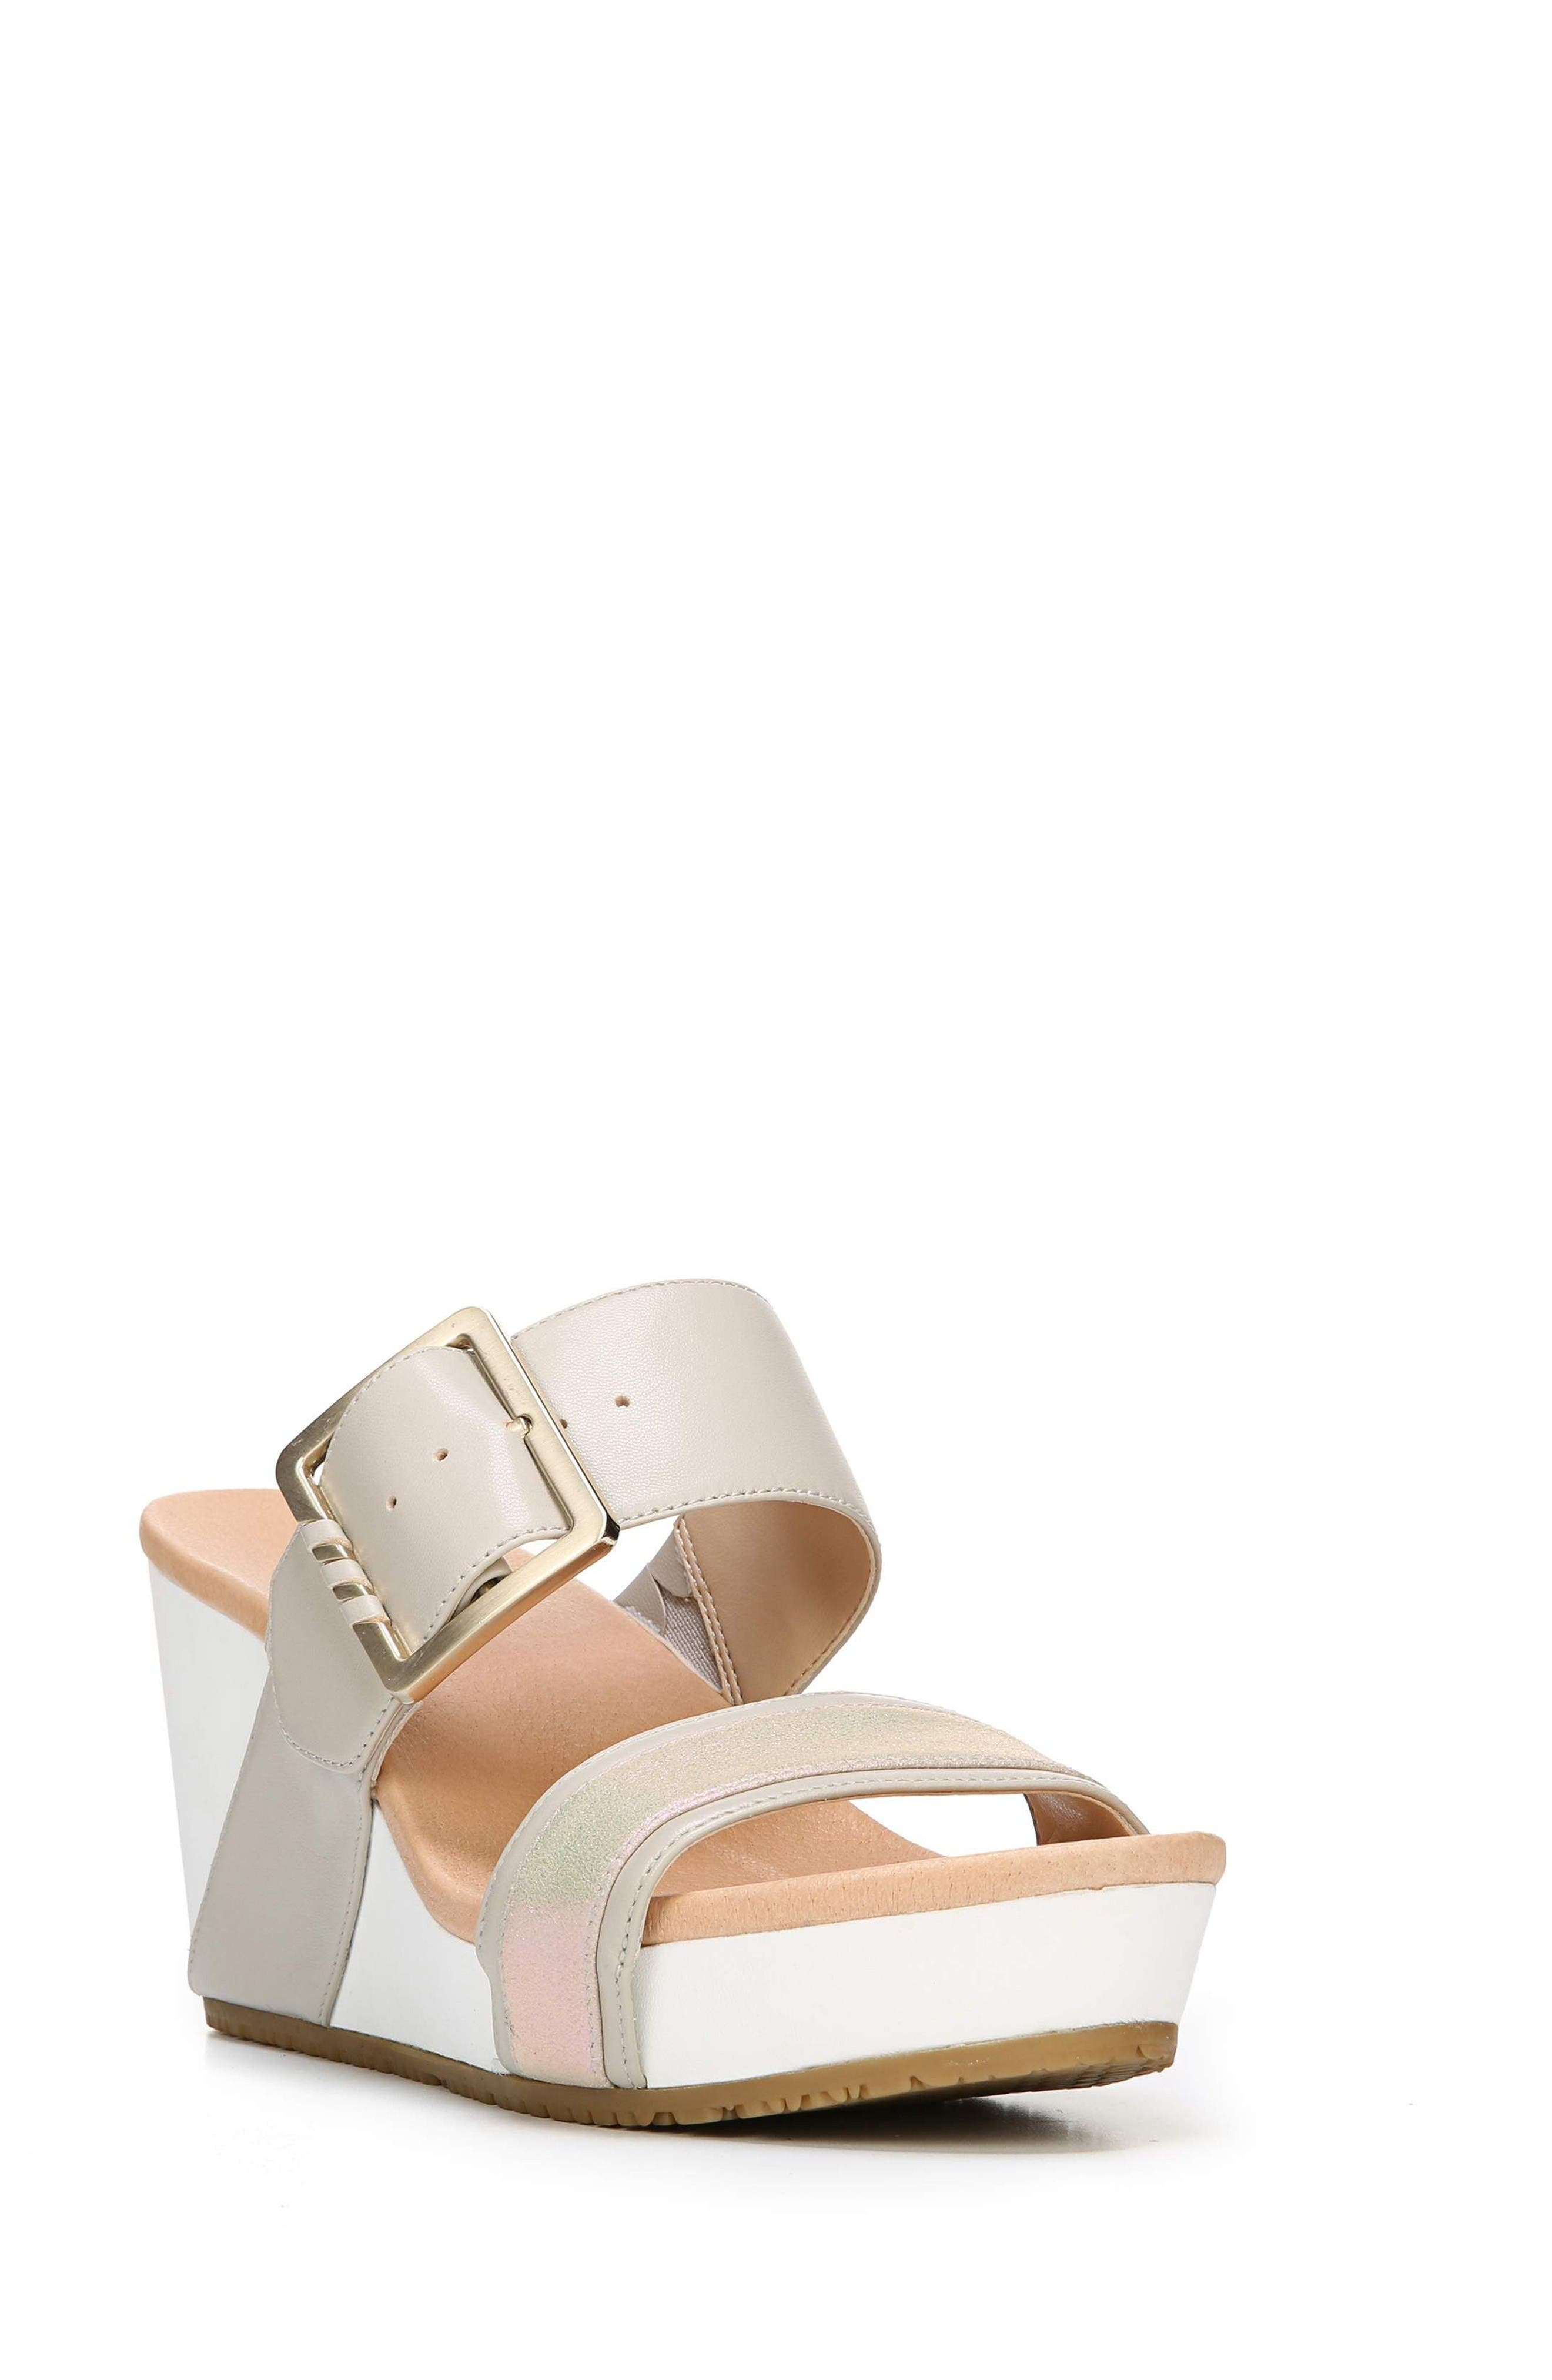 Dr. Scholl's Original Collection Frill Wedge Sandal (Women)